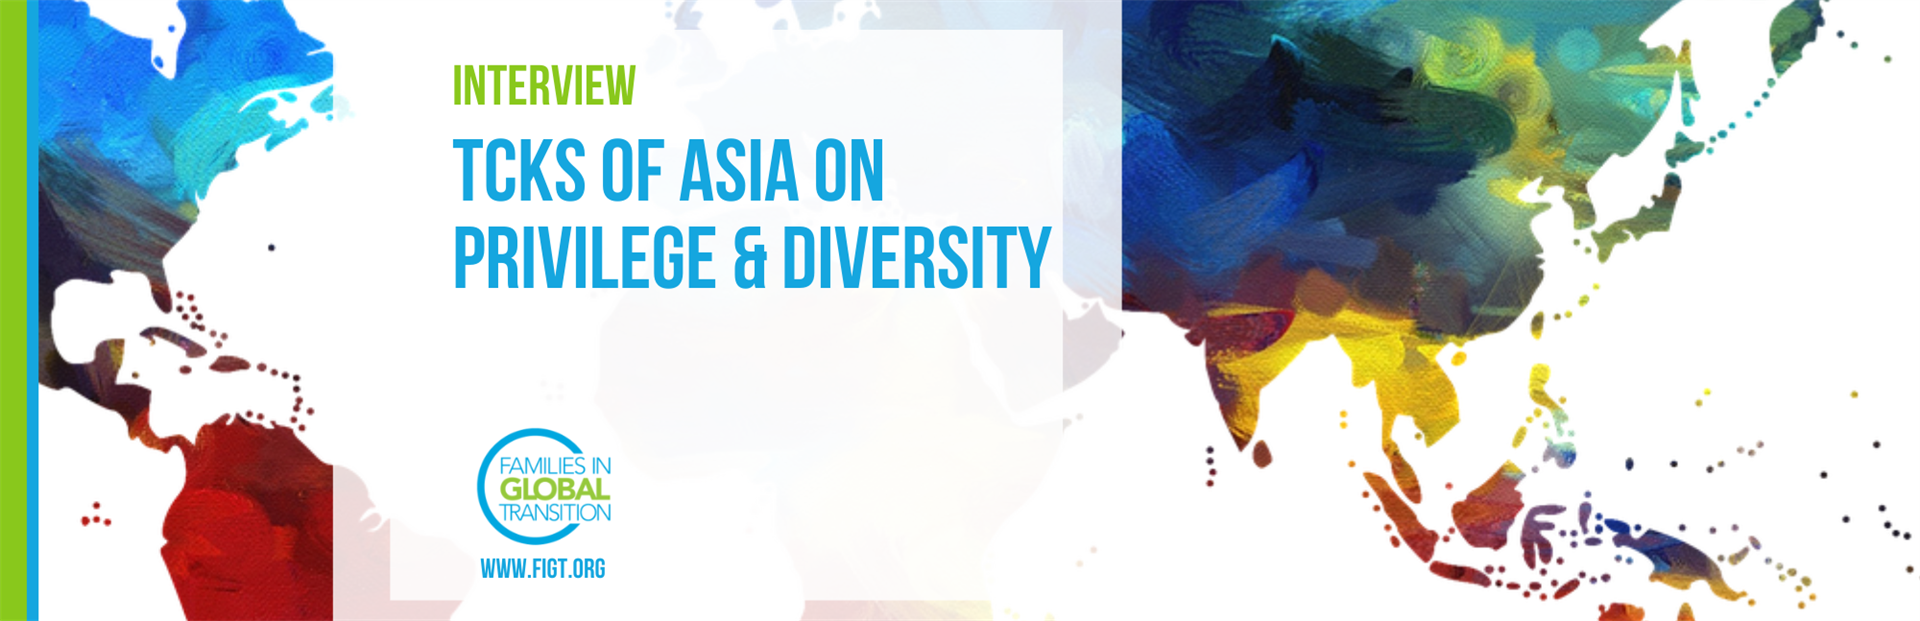 Interview by Ema Naito of FIGT: TCKs of Asia on Privilege & Diversity